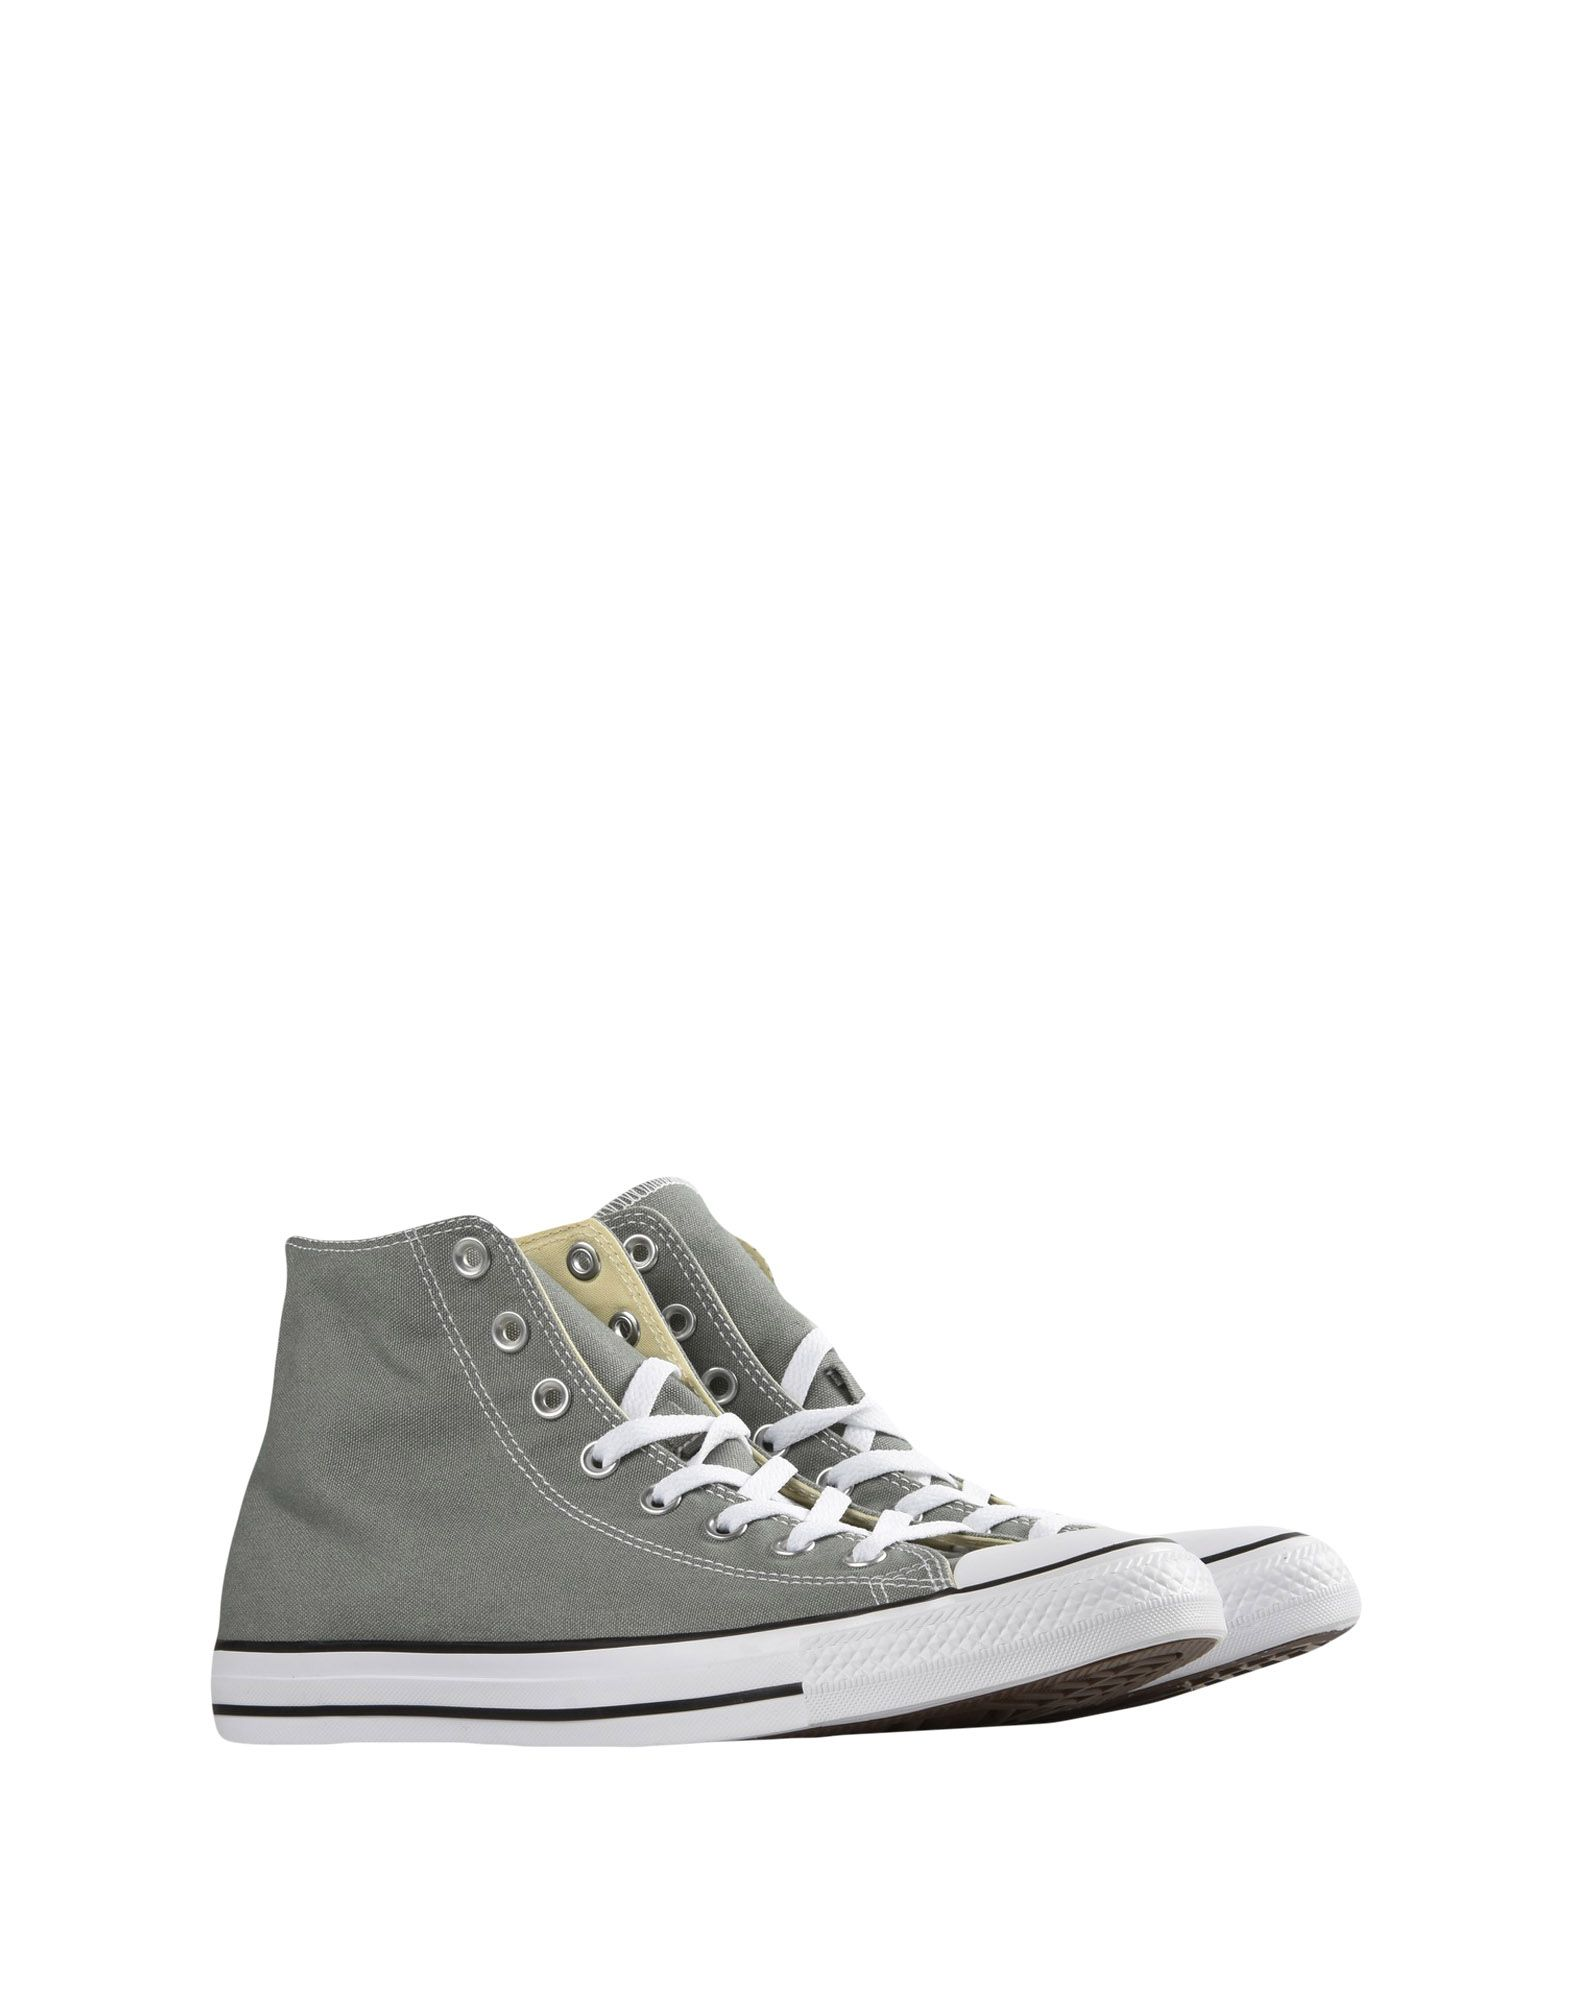 Converse All Canvas Star Ct As Hi Canvas All Seasonal - Sneakers - Men Converse All Star Sneakers online on  United Kingdom - 11216302UL 533c77